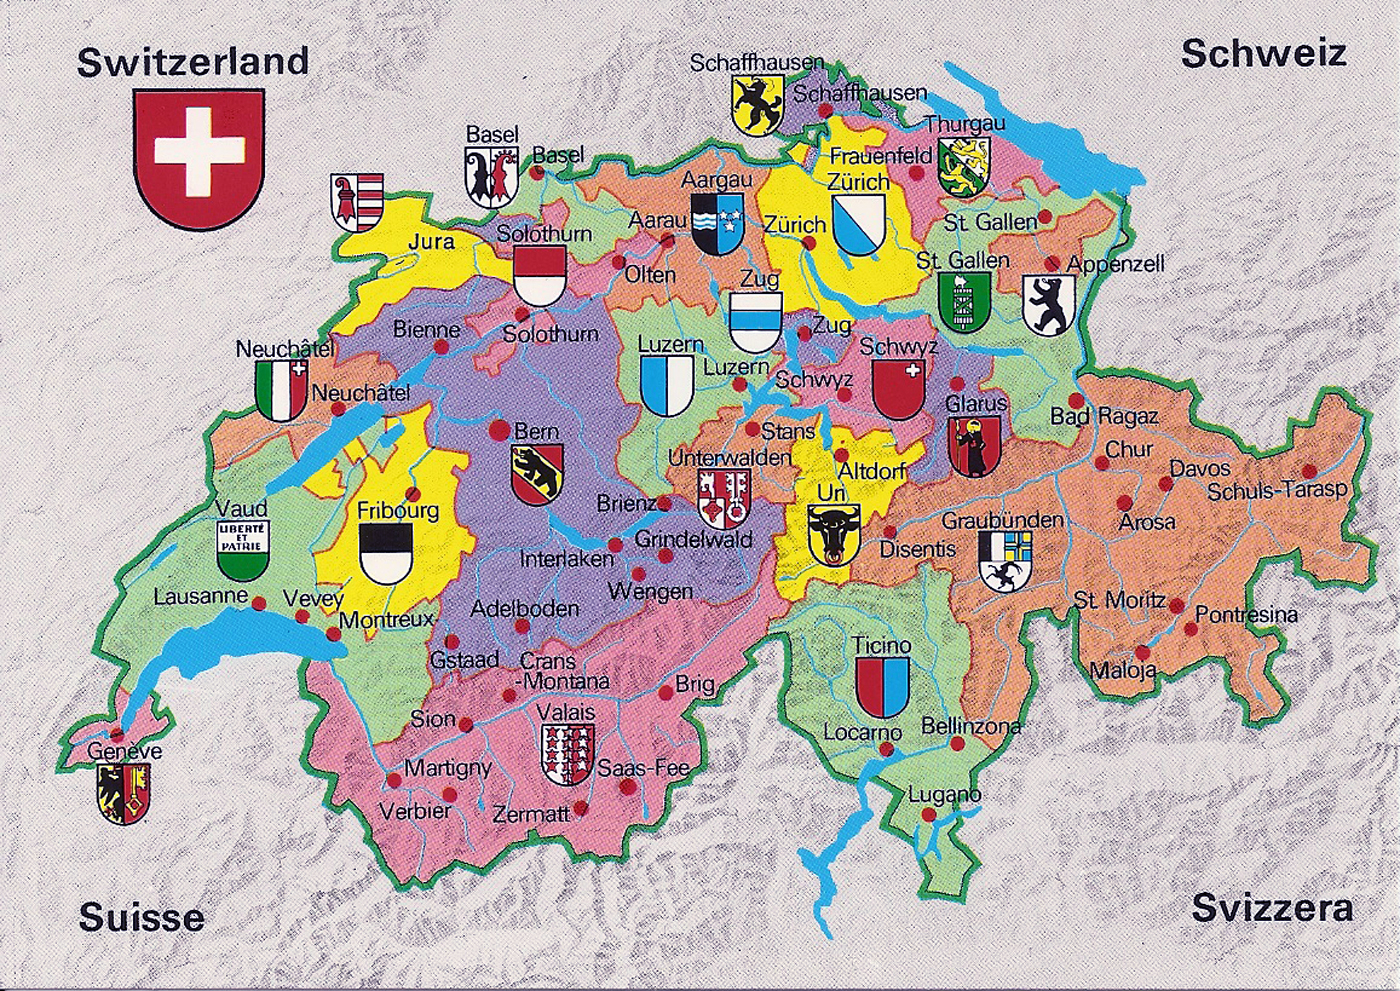 Big Large Size Switzerland Political Road Map and Flag Travel